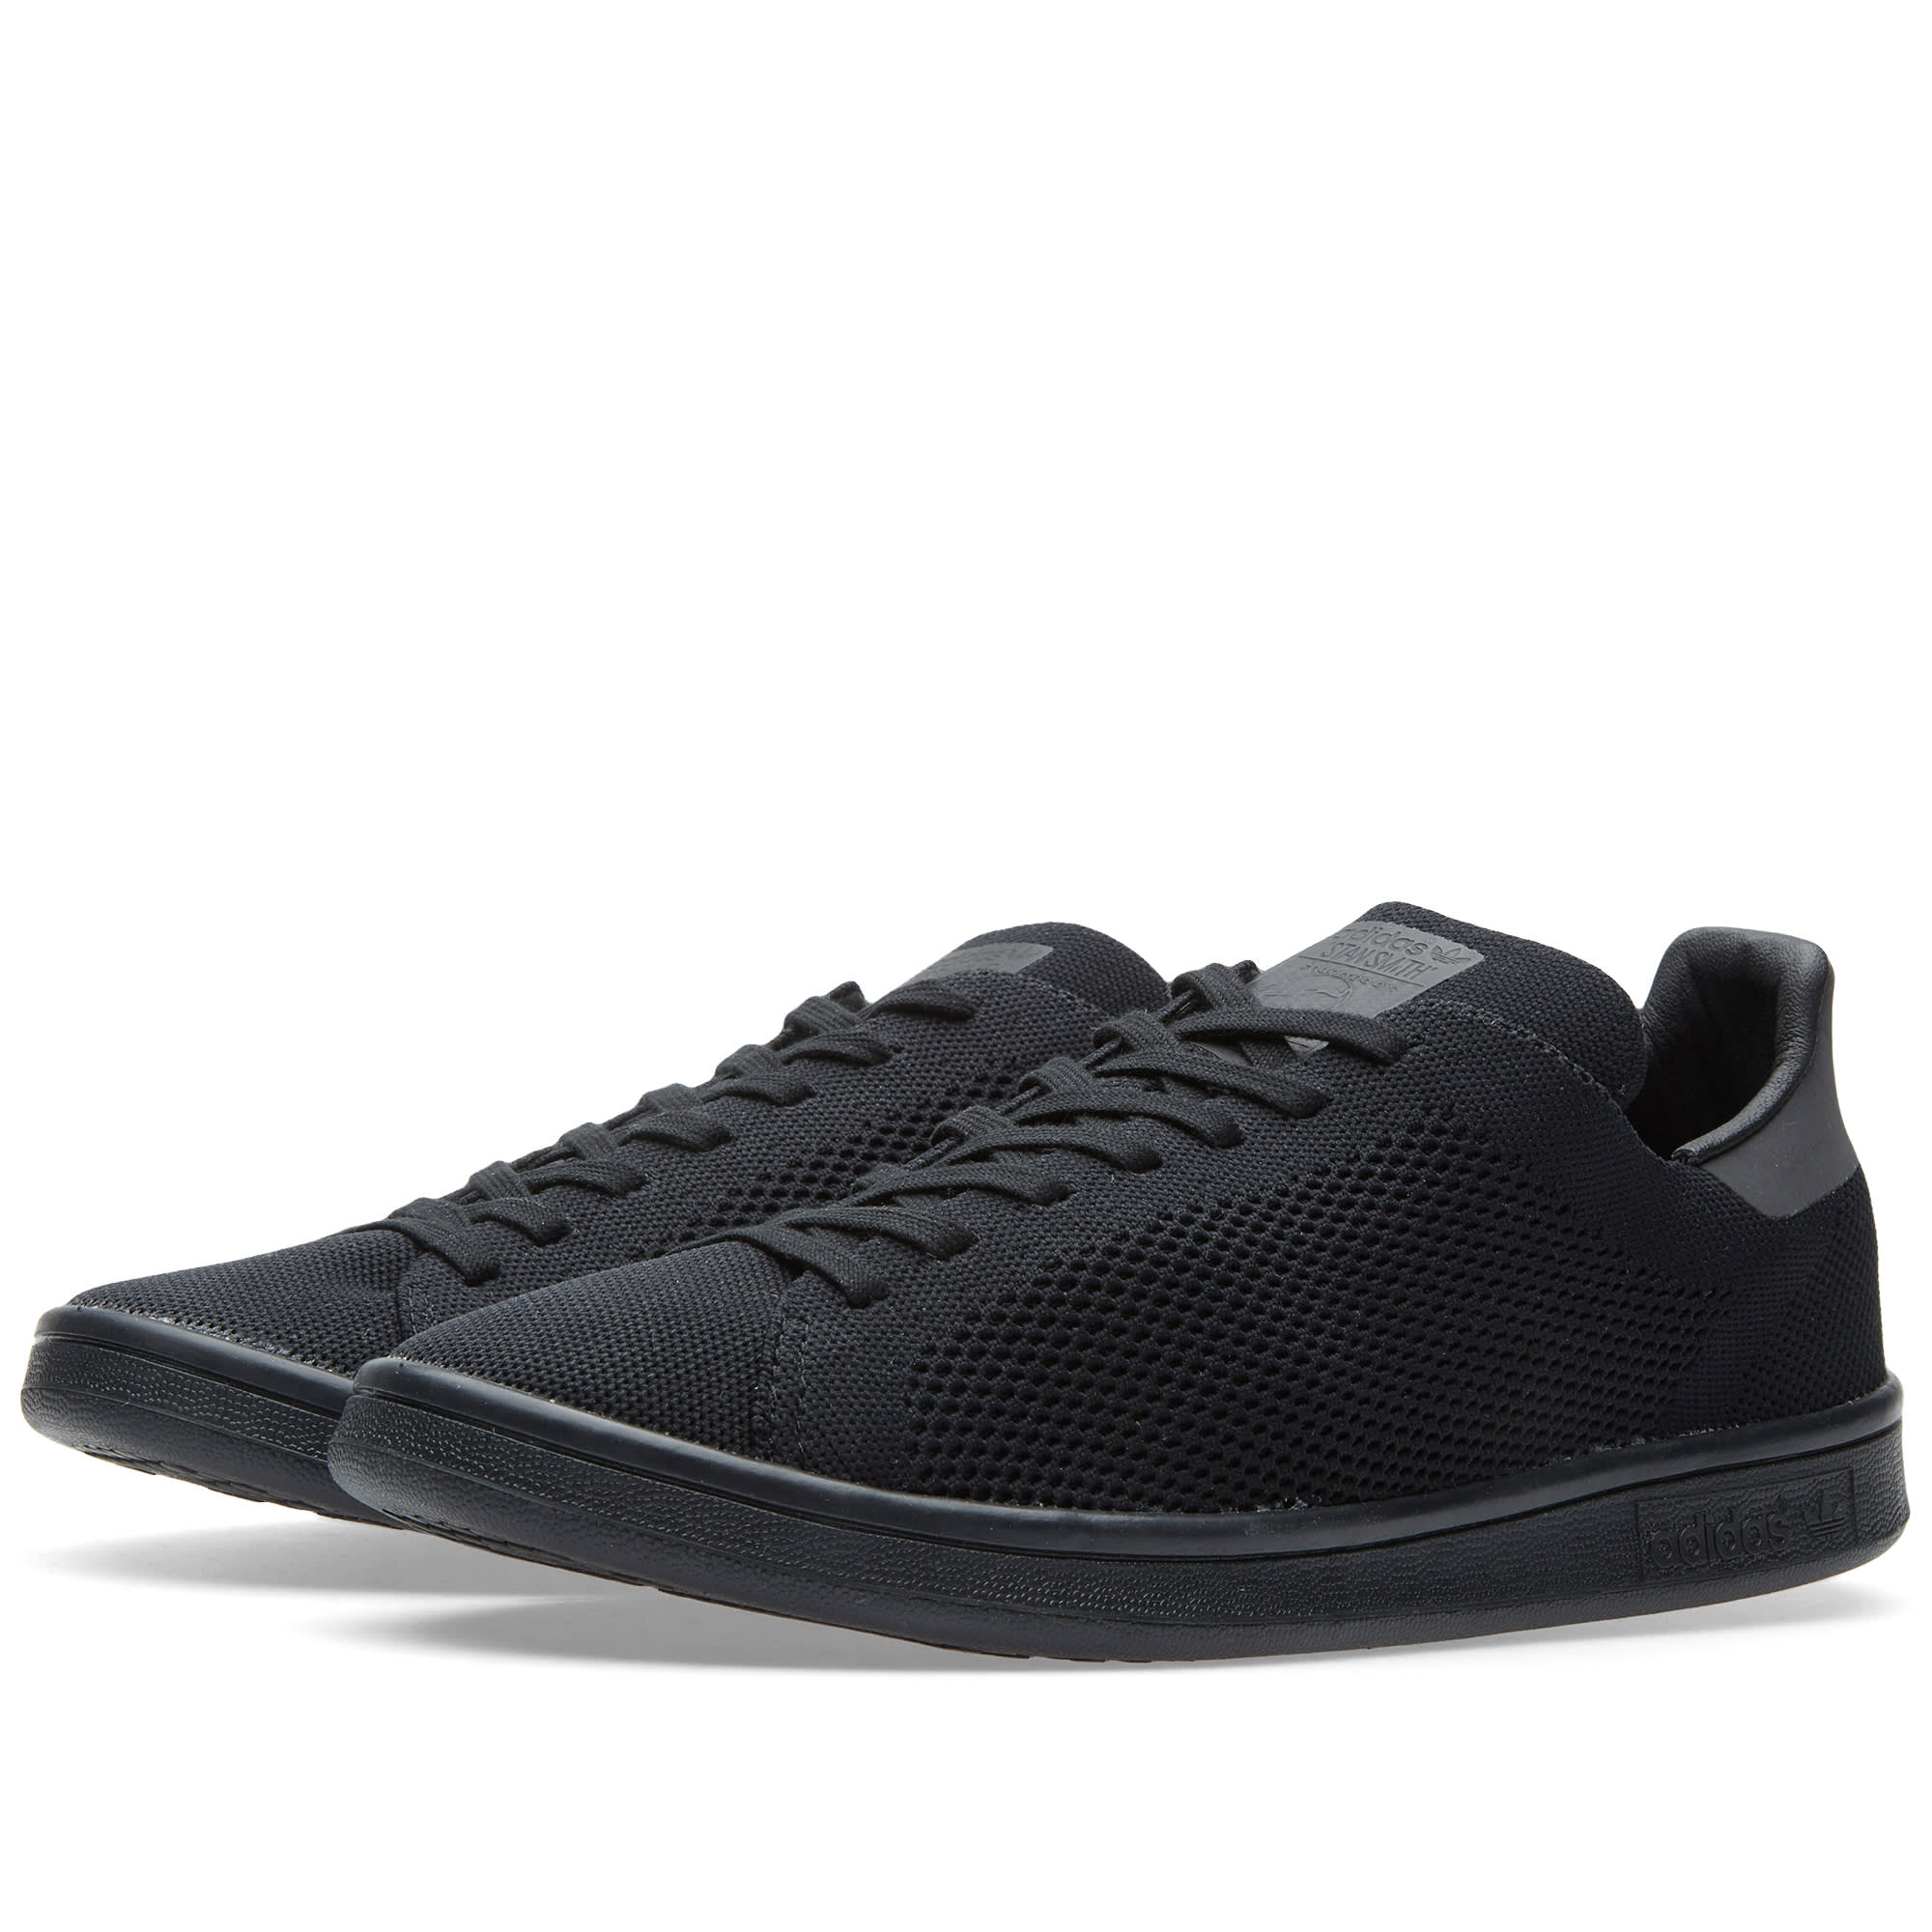 adidas stan smith primeknit core black. Black Bedroom Furniture Sets. Home Design Ideas